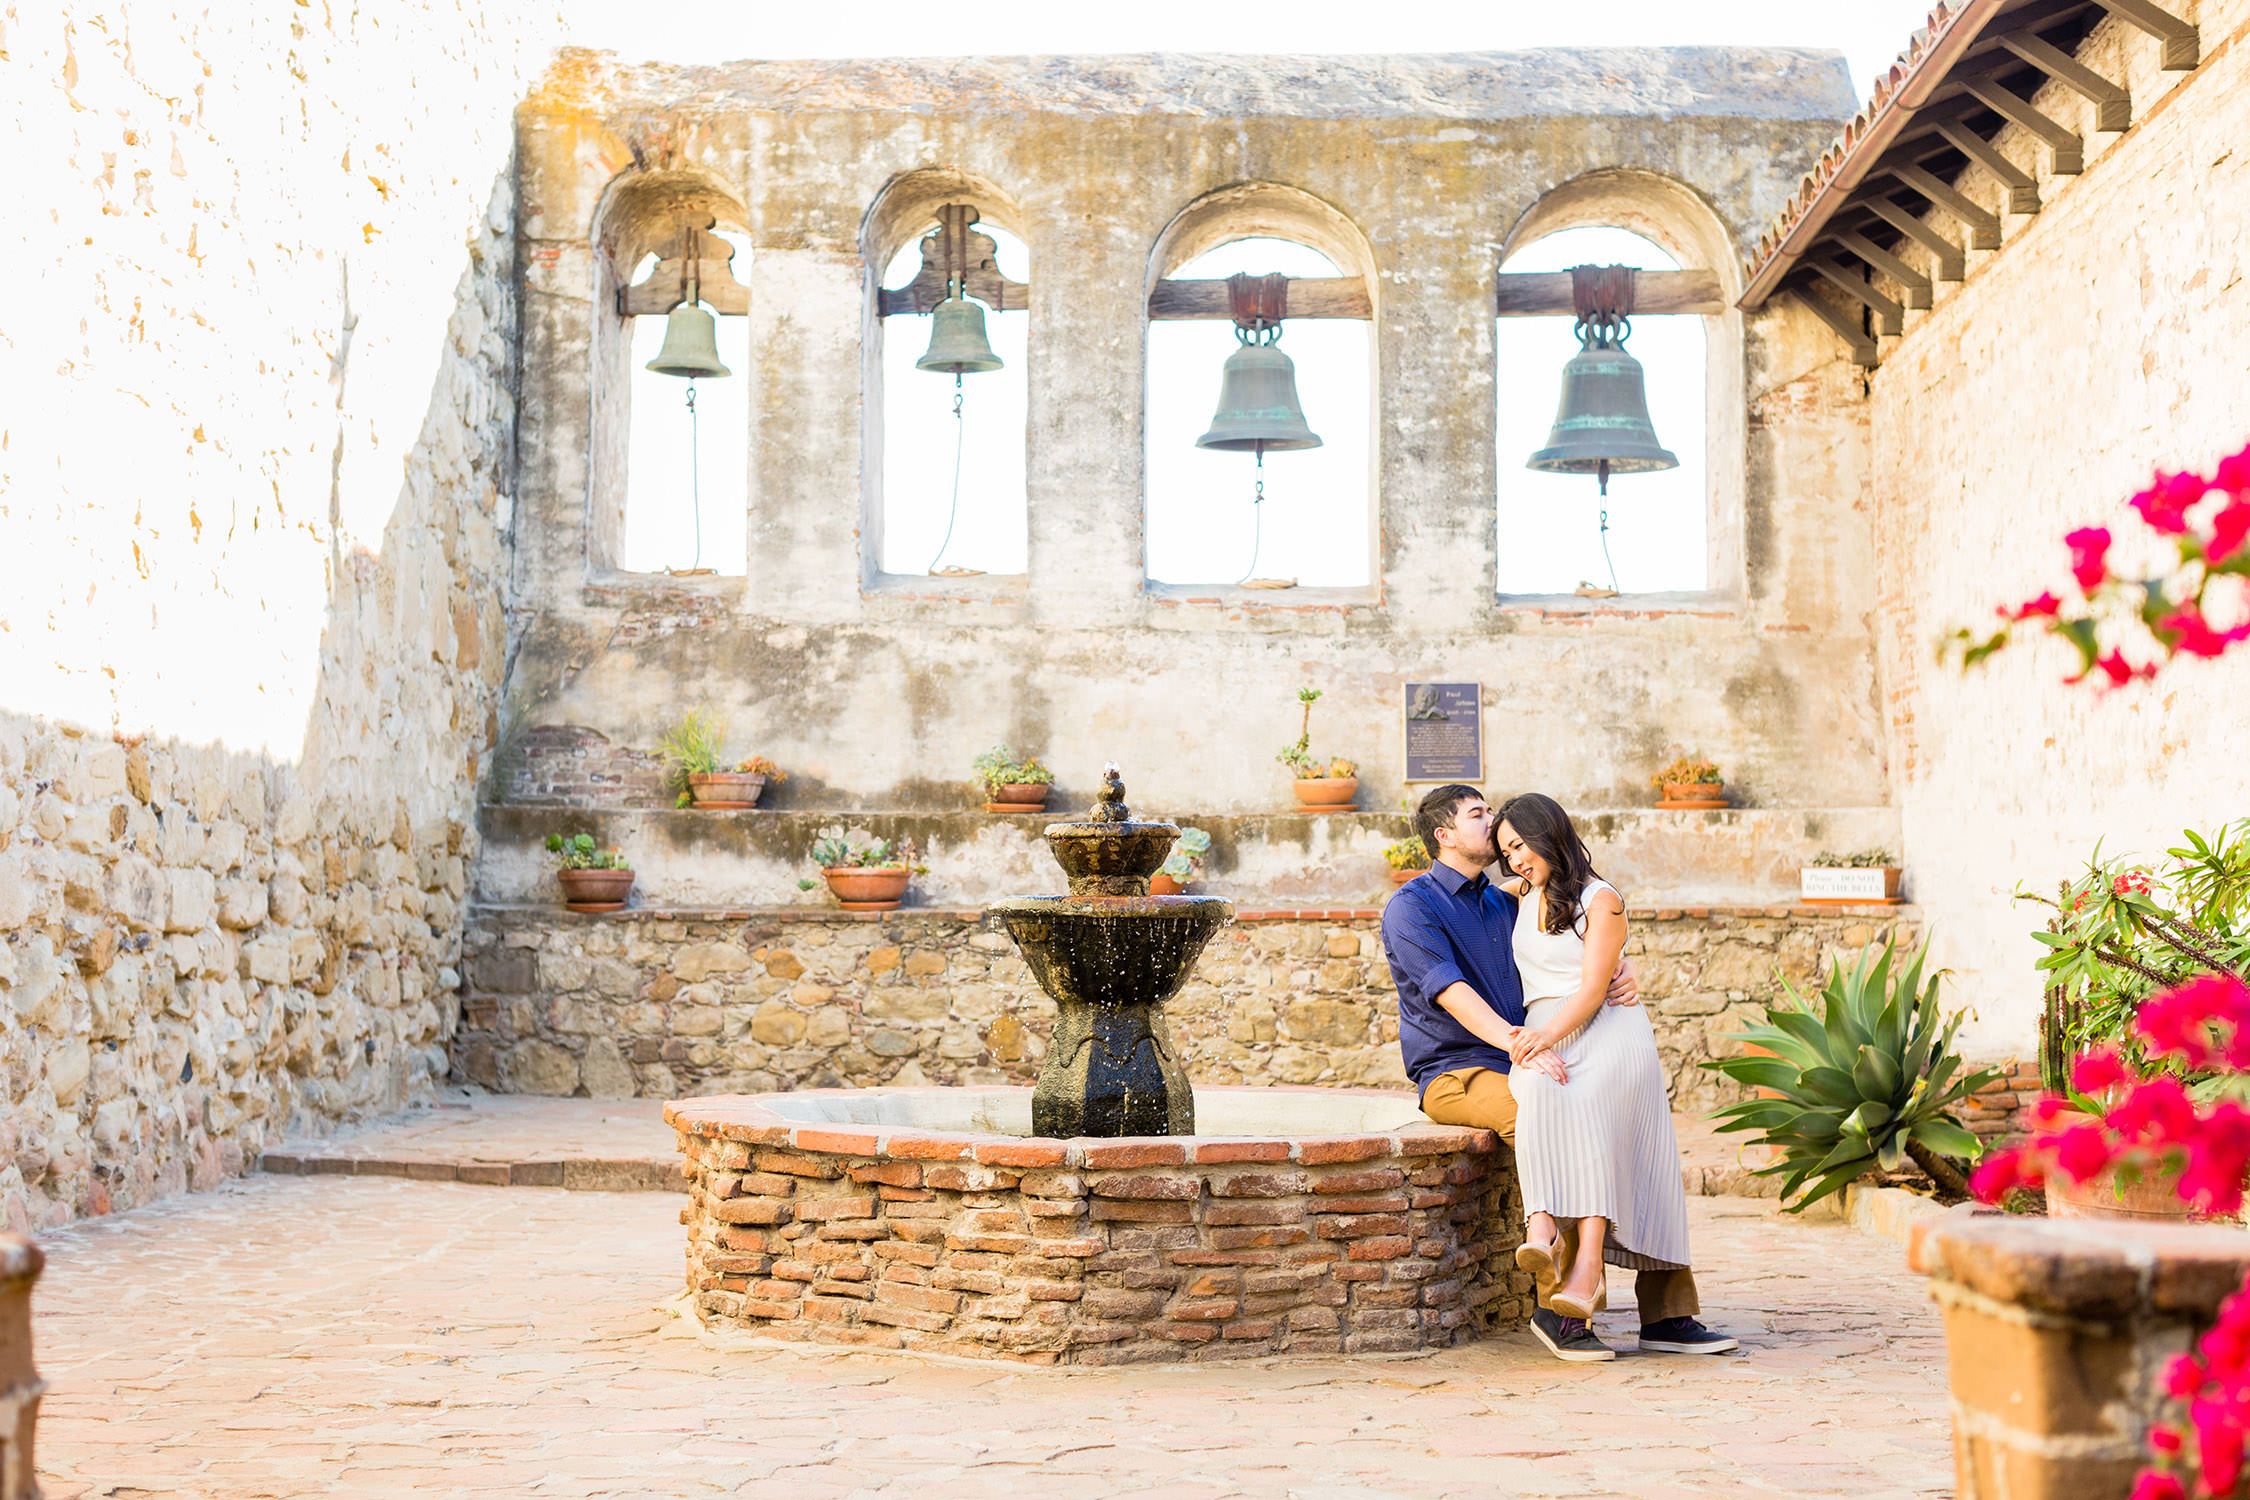 Engagement session at The Mission in San Juan Capistrano, southern california